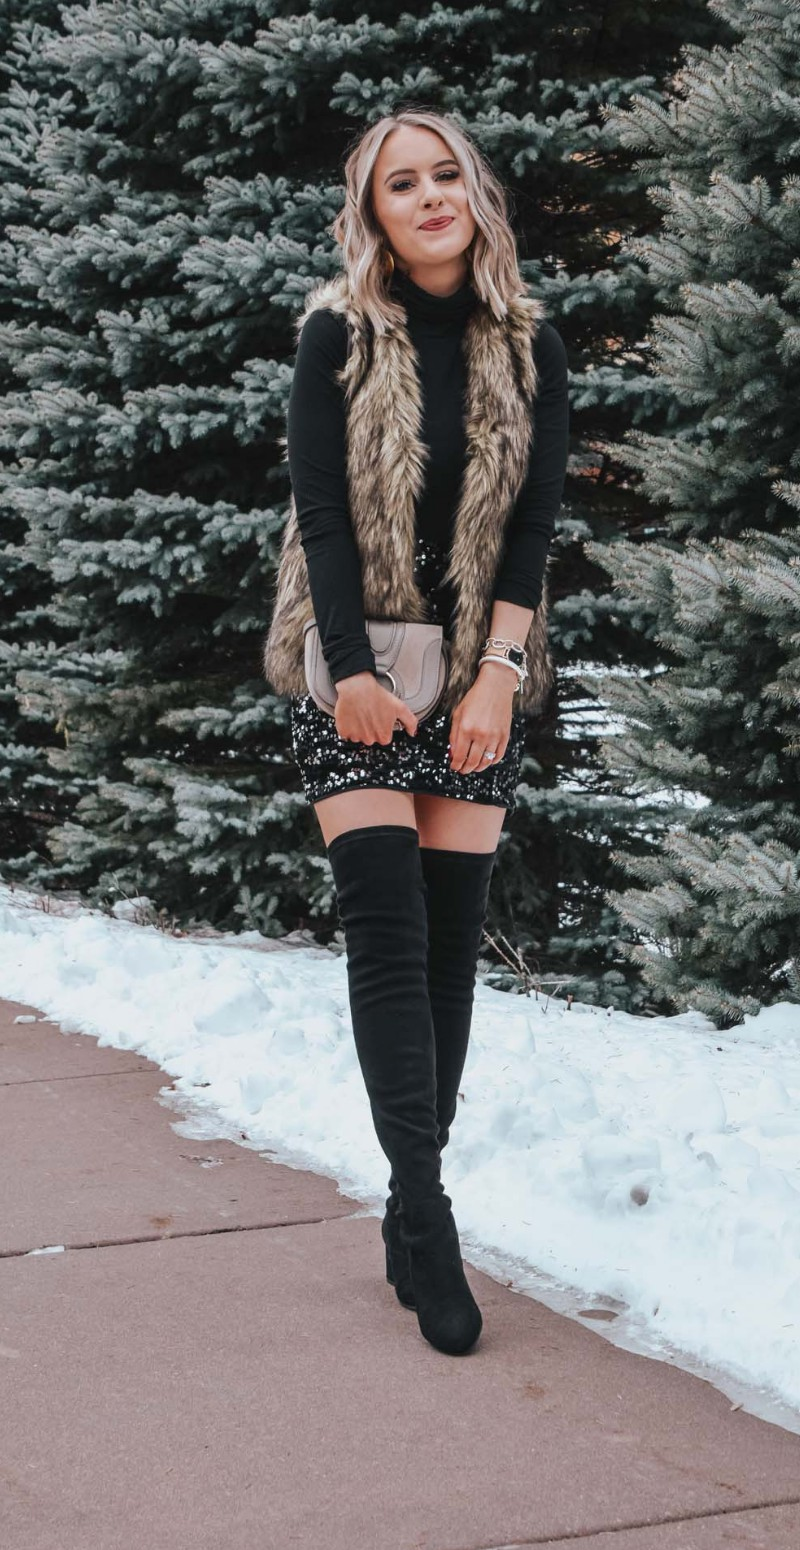 Collections of fur clothing, New Year